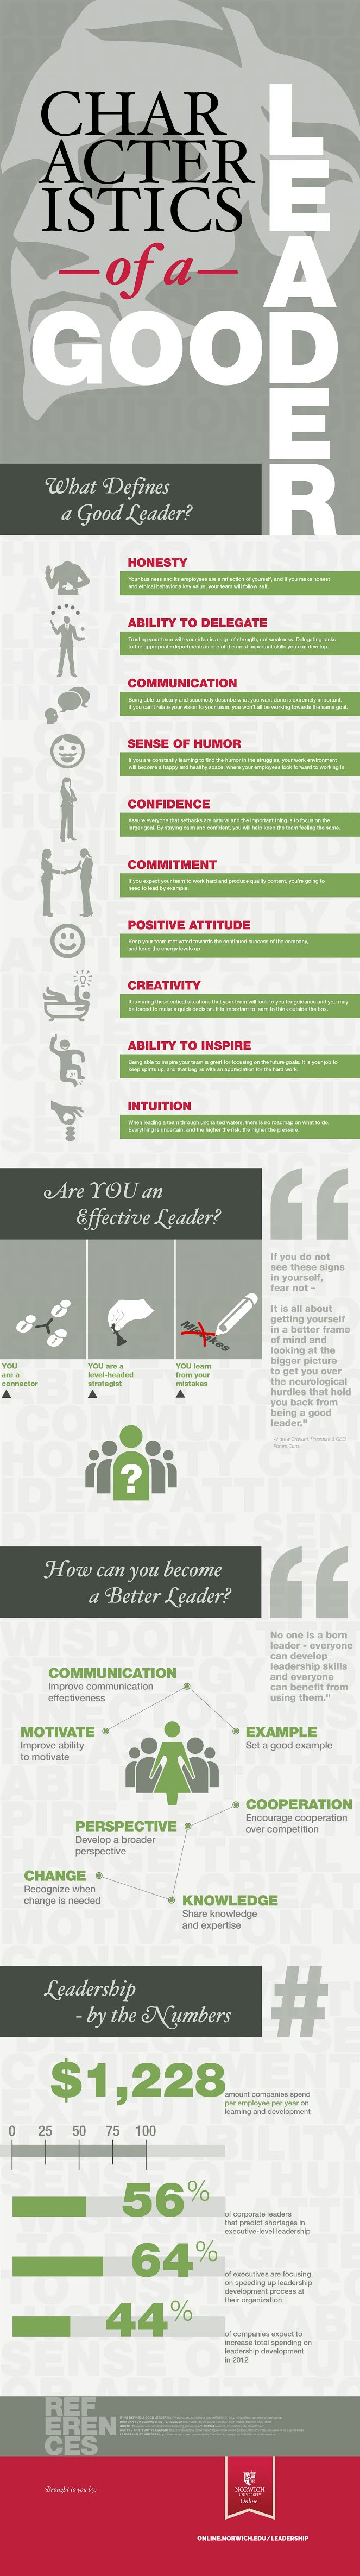 Characteristics of a Good Leader #infographic